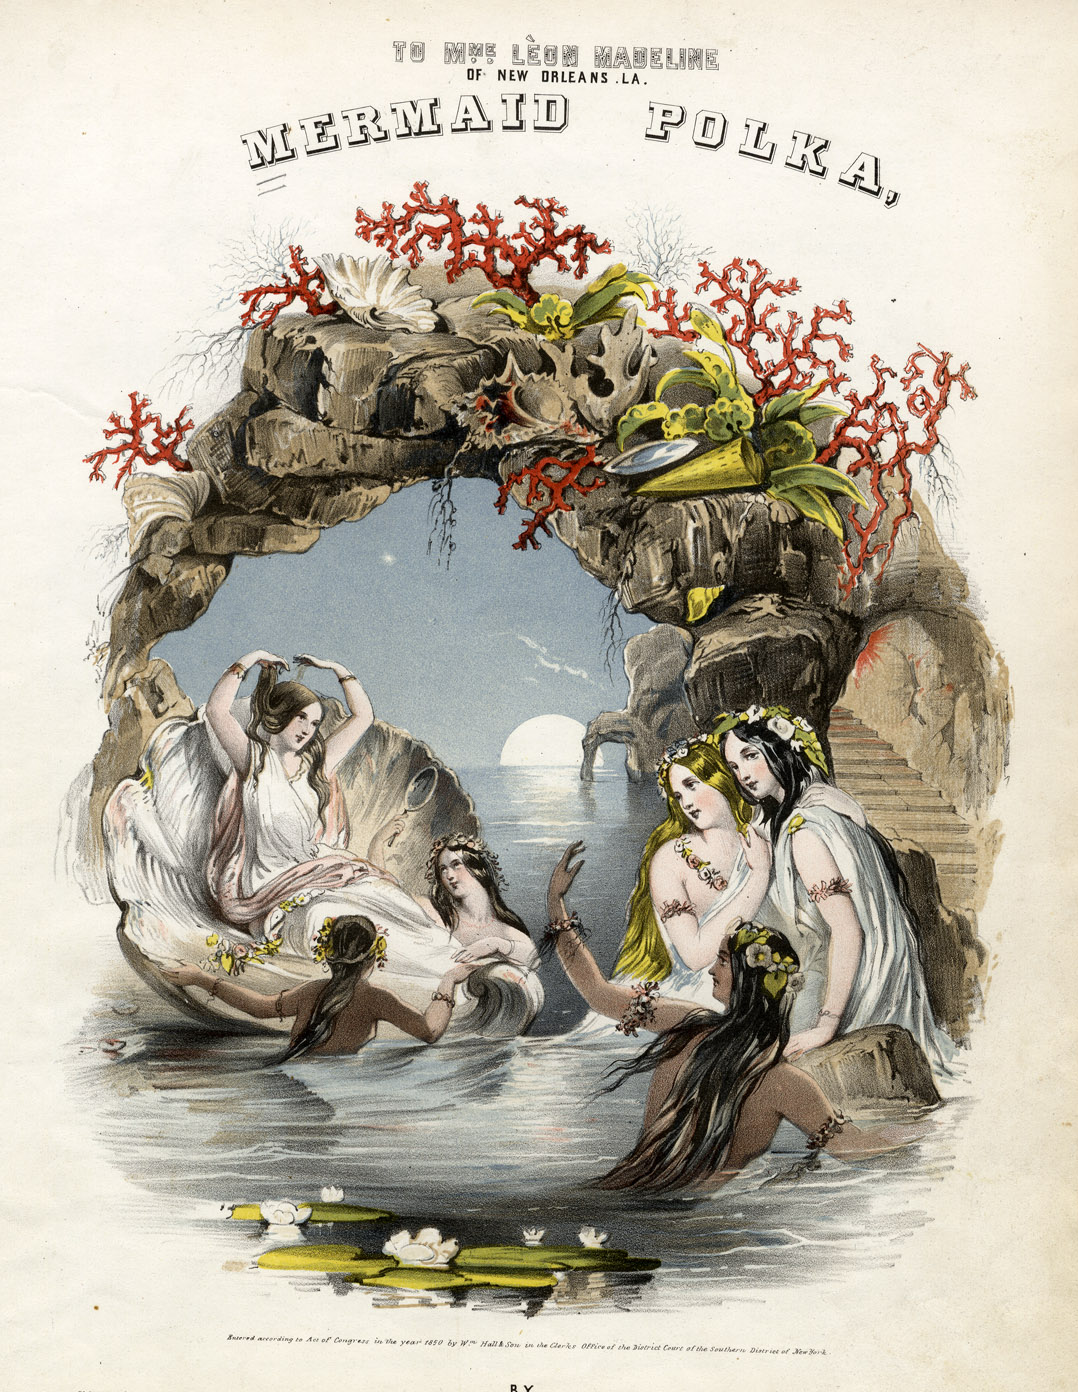 The Mermaid Polka (1850) is just one example of how public fascination with mermaids manifested itself in 19th century art, music, and literature. https://commons.wikimedia.org/wiki/File:Mermaid_Polka_art_1850.jpg